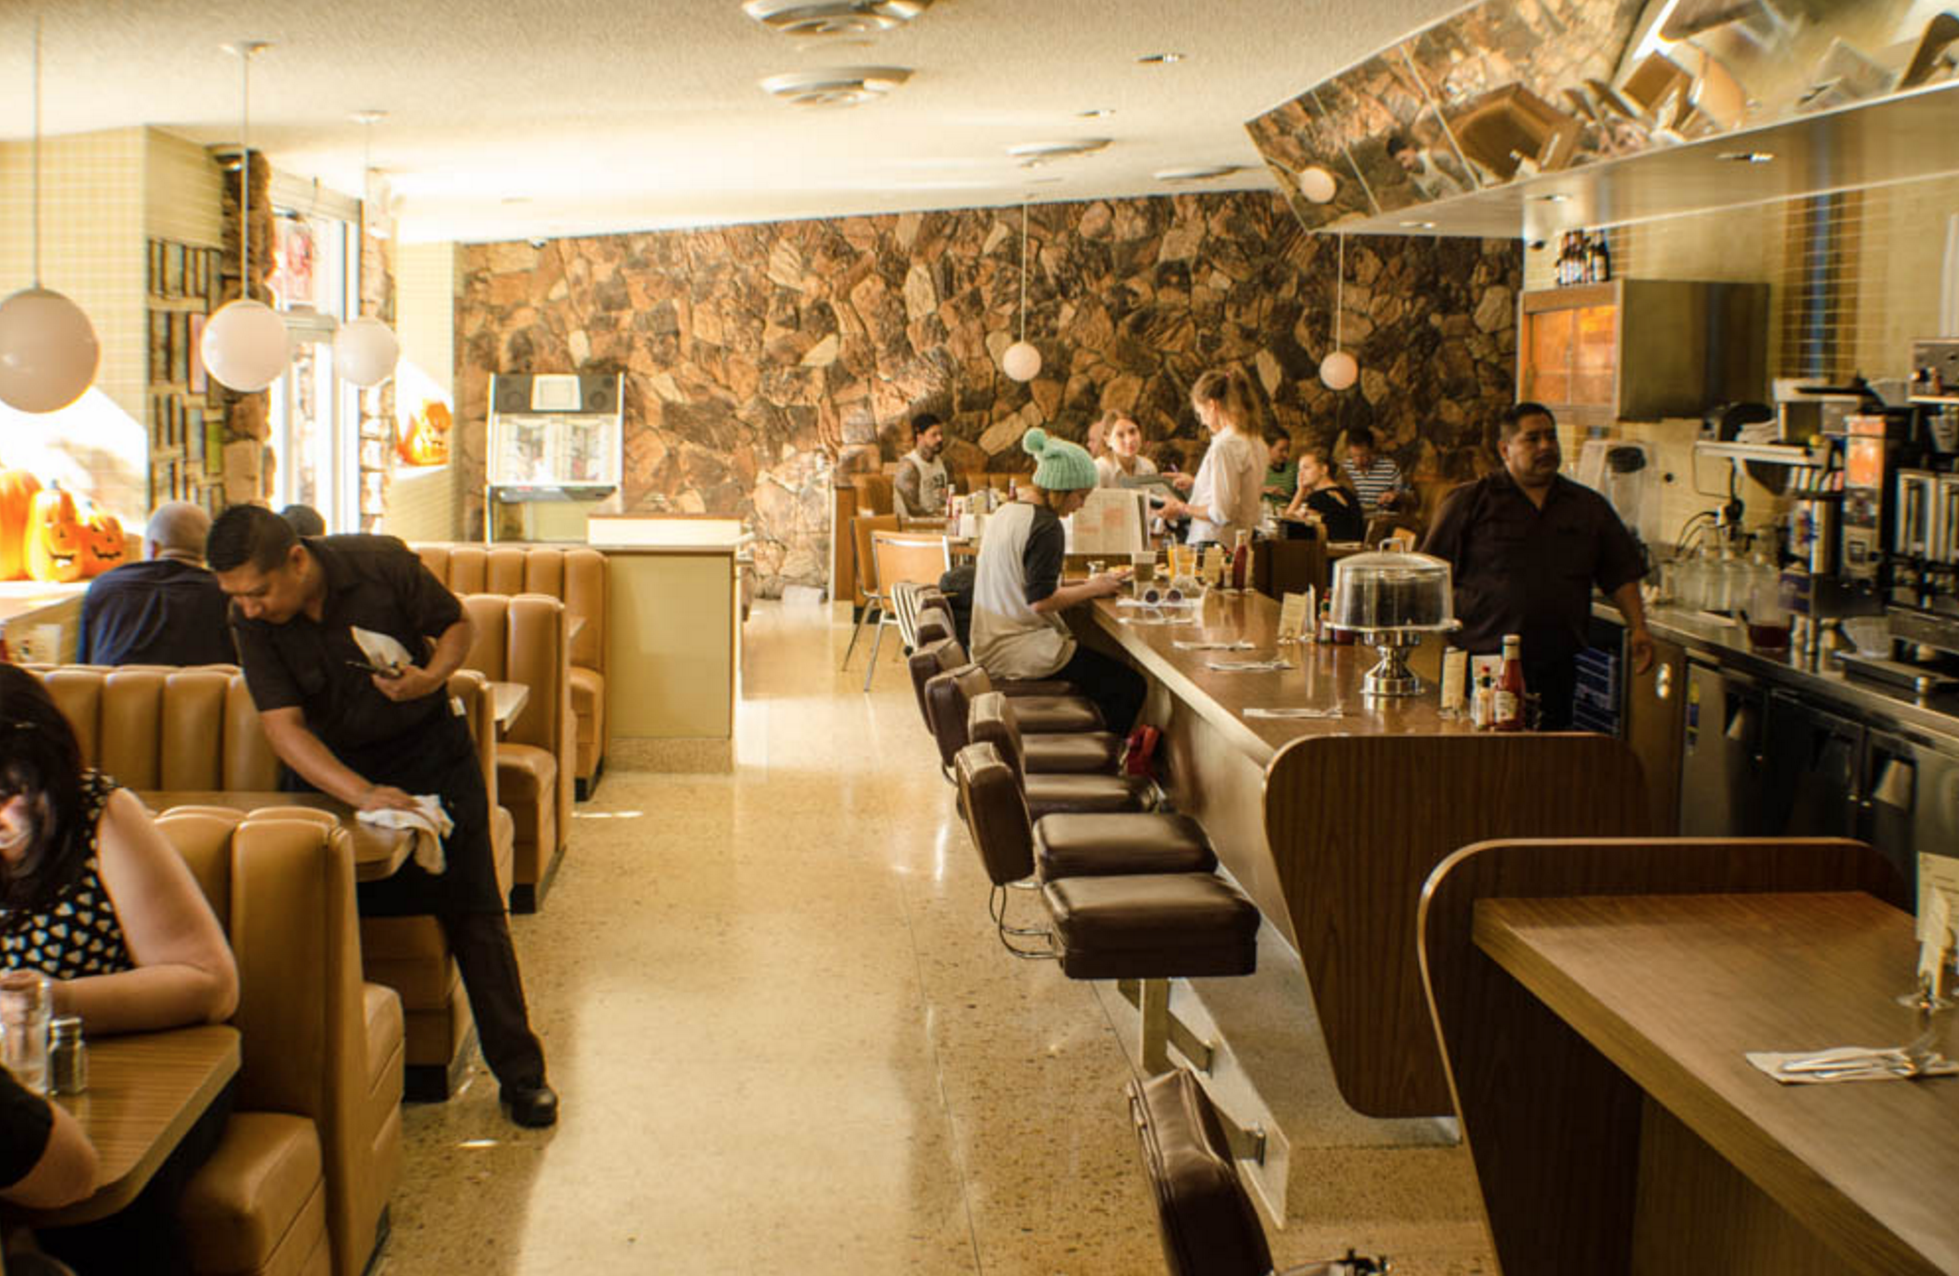 101 Coffee Shop is shown as a tan backdrop for a diner with rock walls and big booths.